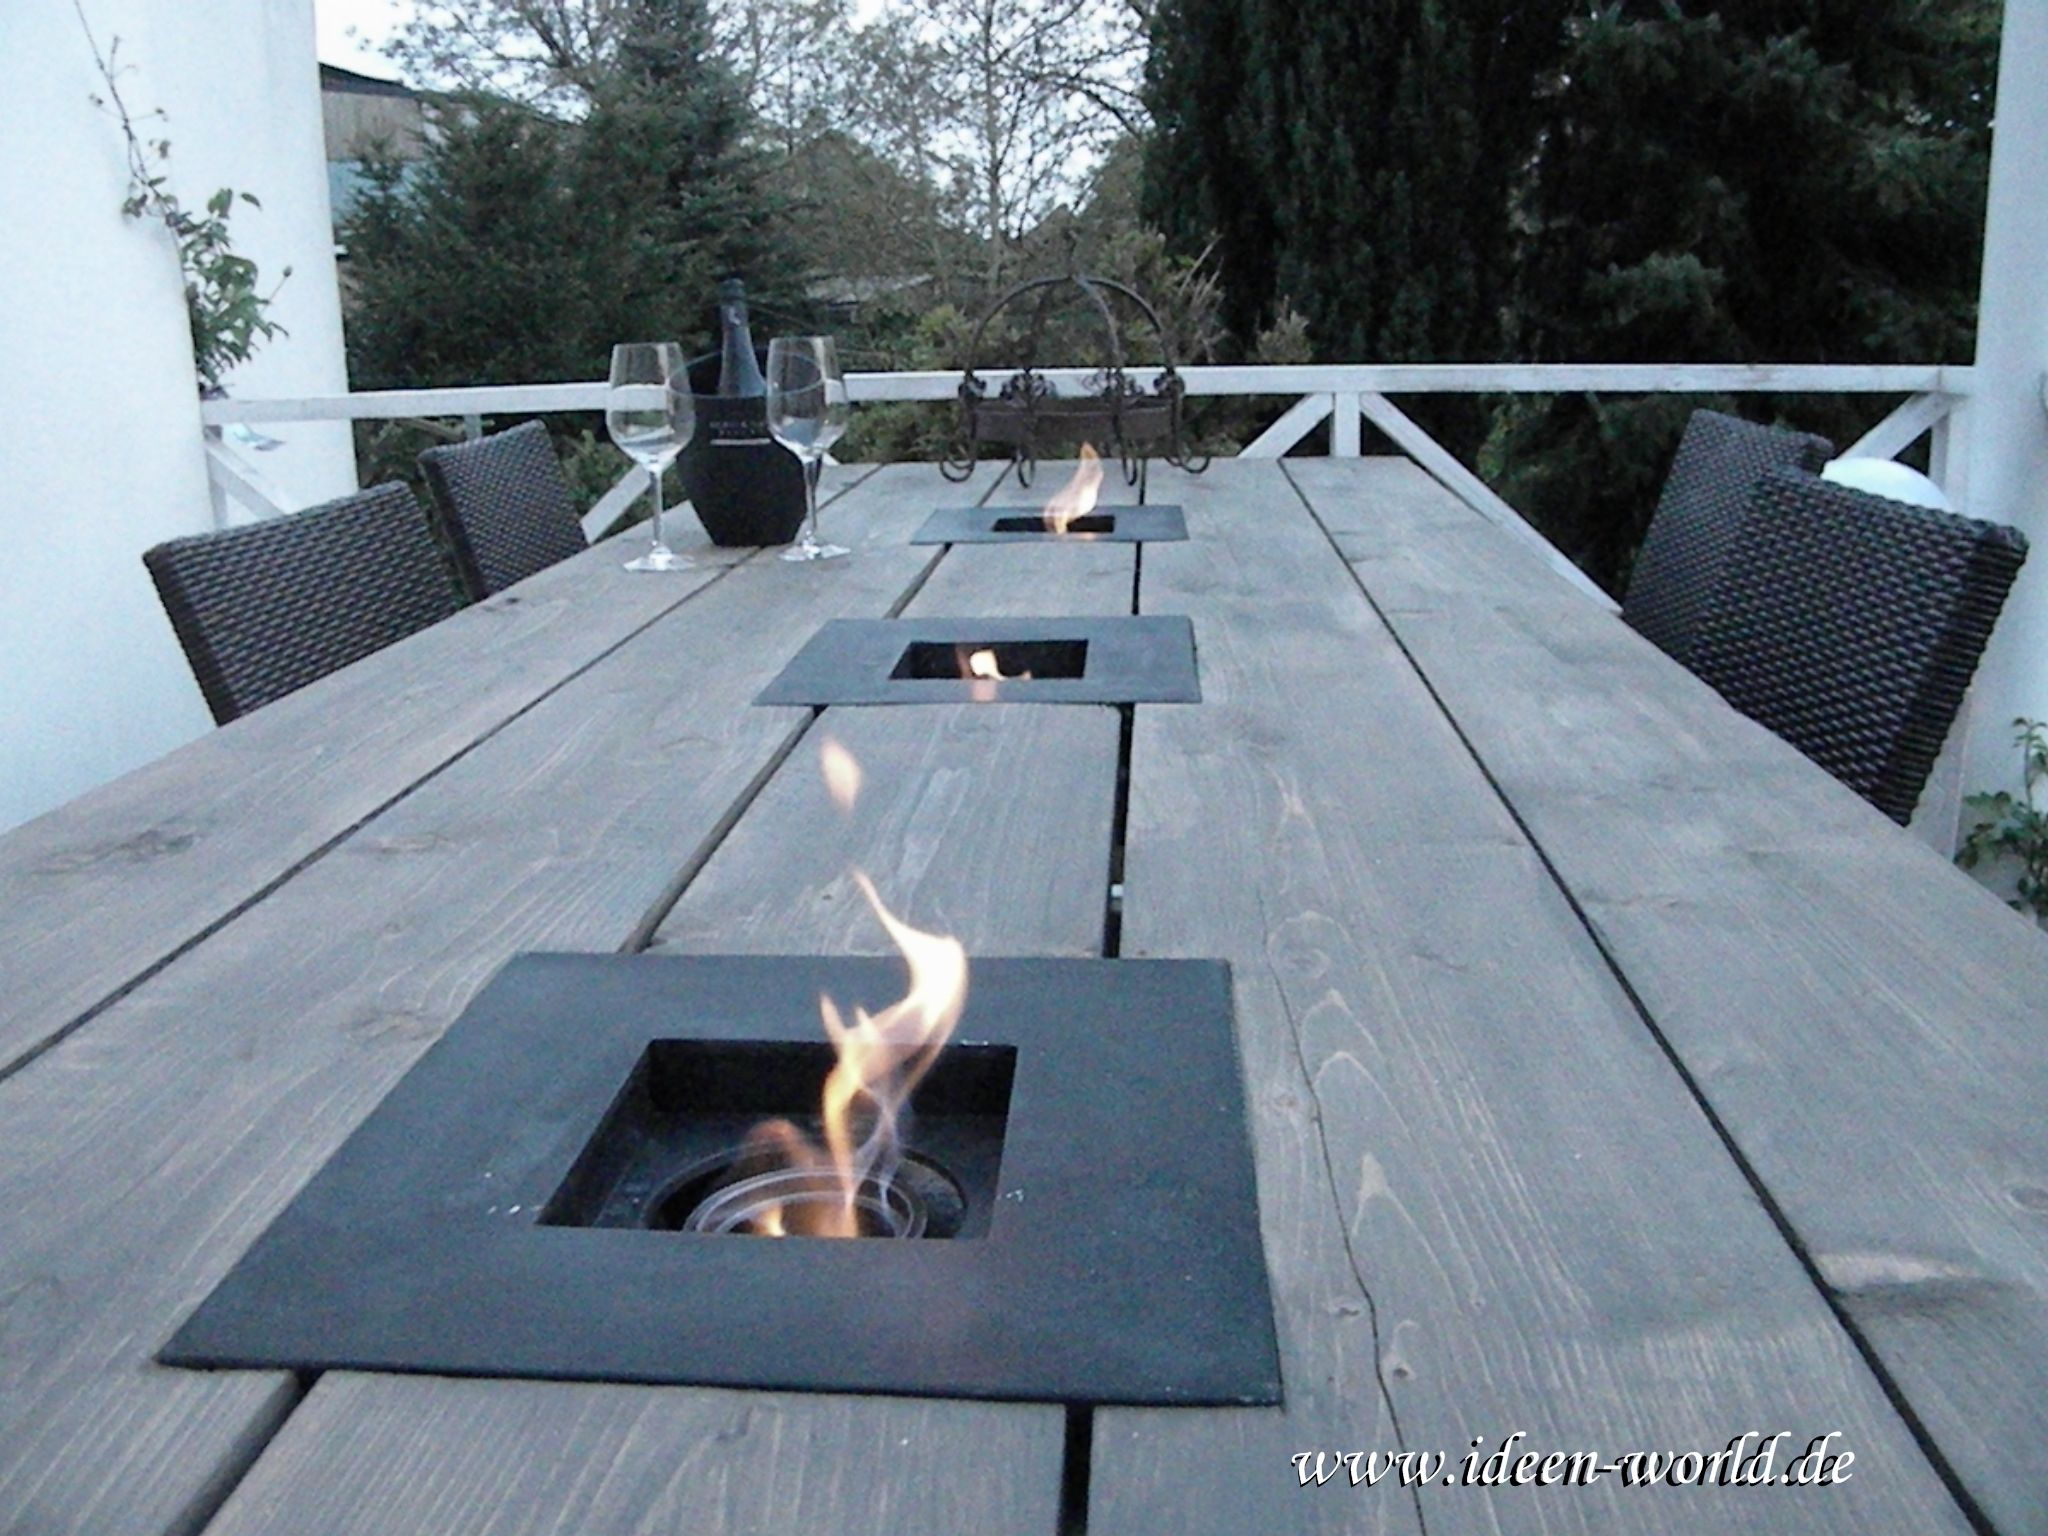 garten tisch mit feuerstellen tel 015734256781 tische. Black Bedroom Furniture Sets. Home Design Ideas